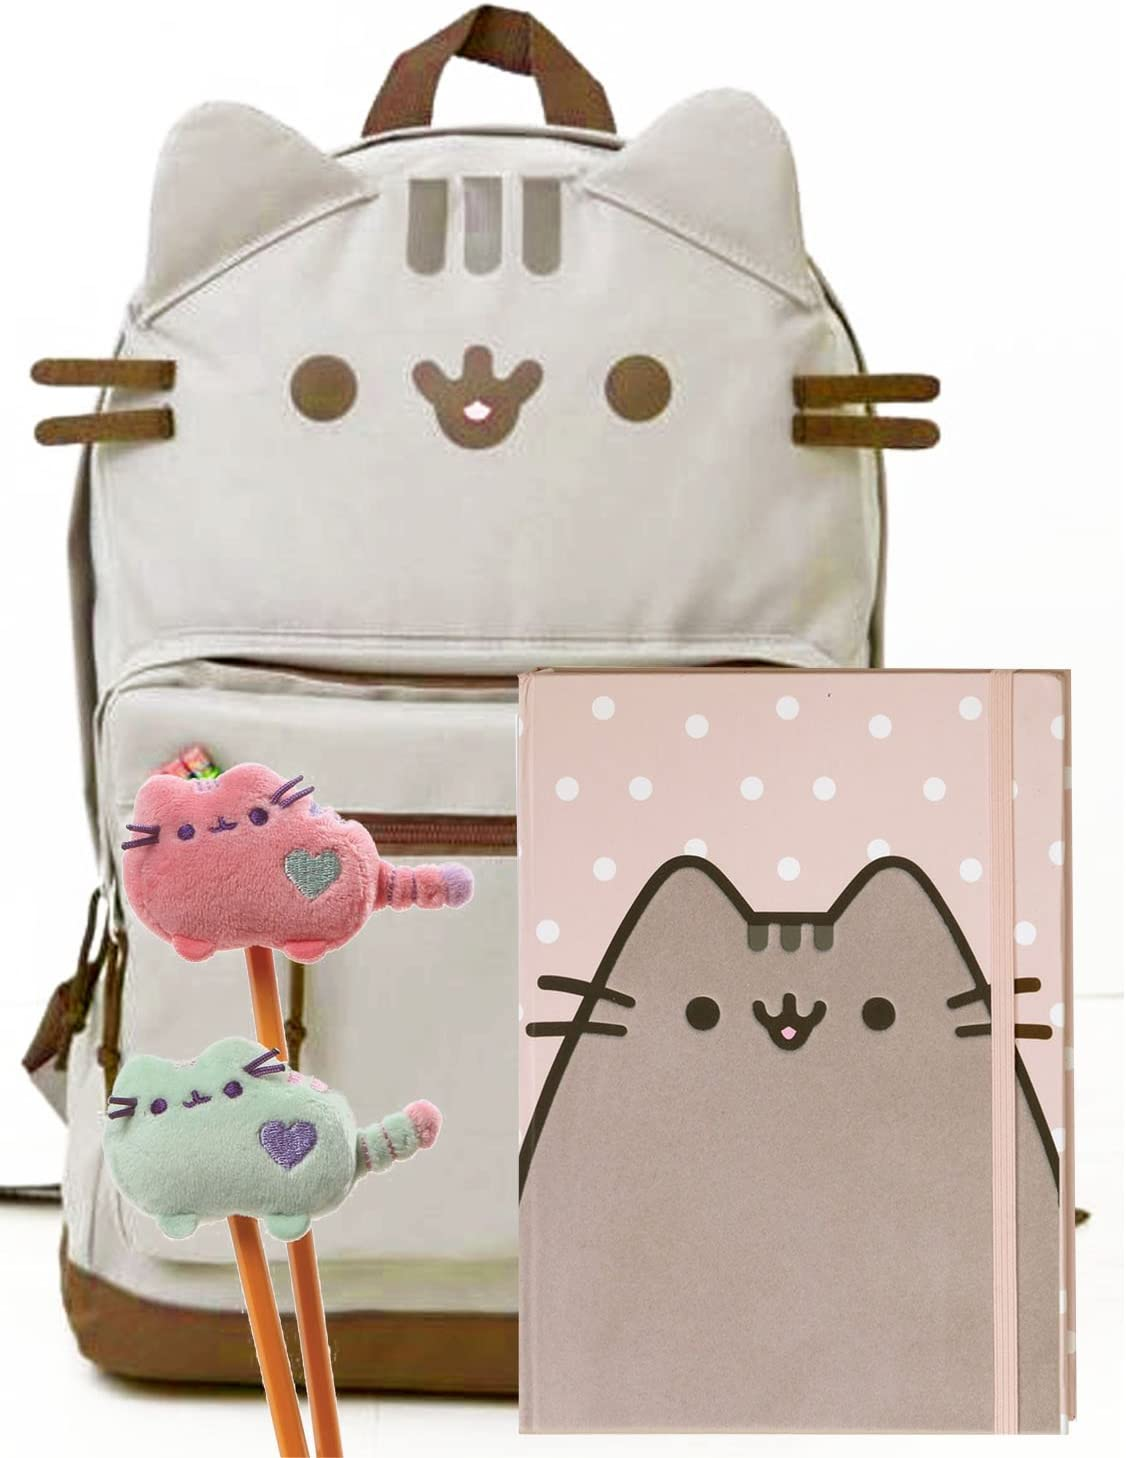 Pusheen Polka Dot Notebook And Two Plush Pencil Toppers Gift For Student Pusheen Cat Face Backpack Pusheen The Cat Back To School Set